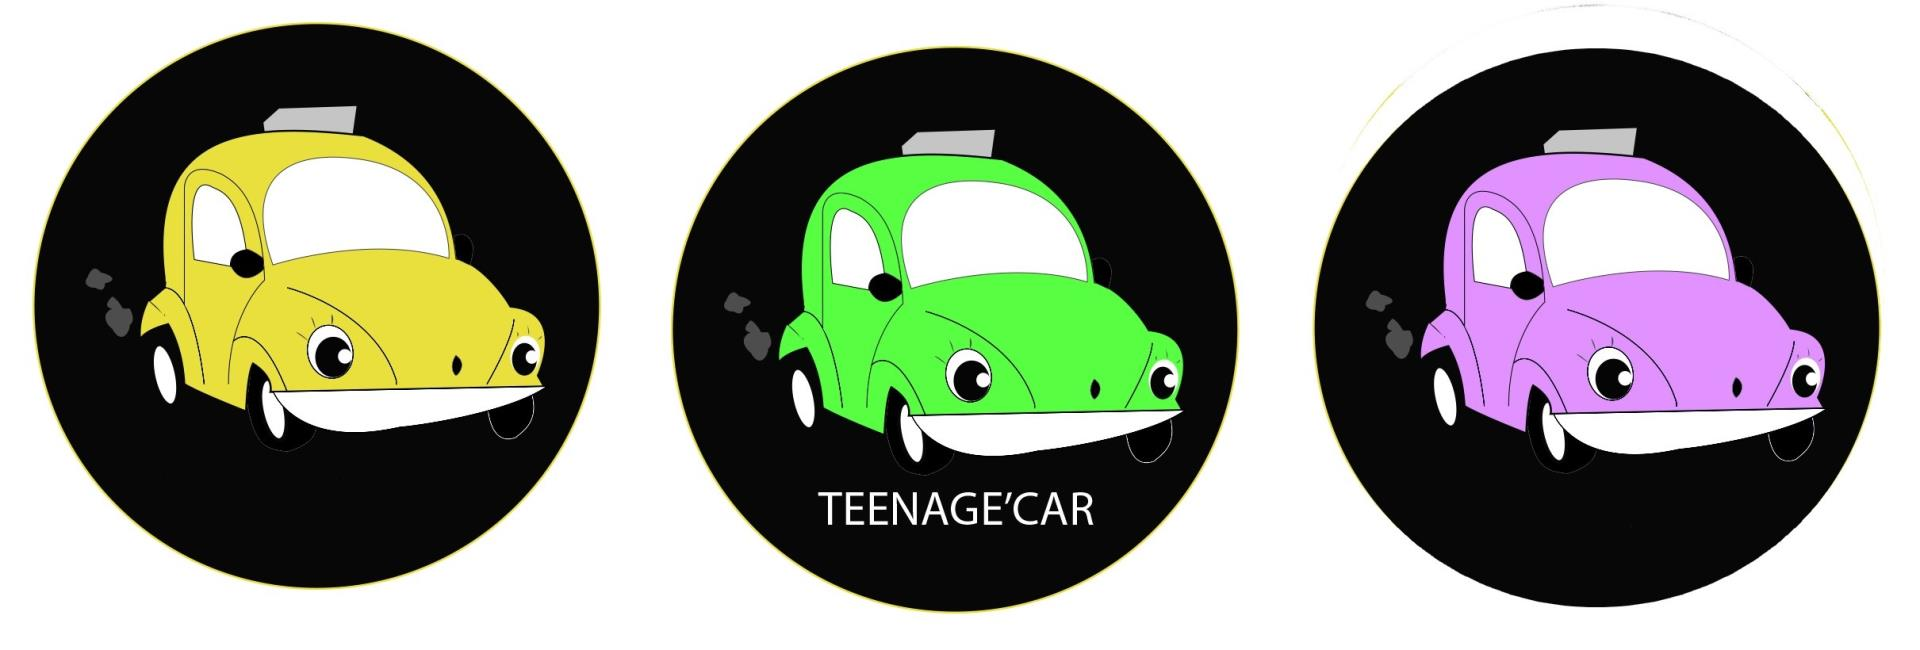 Association - Teenage'Car